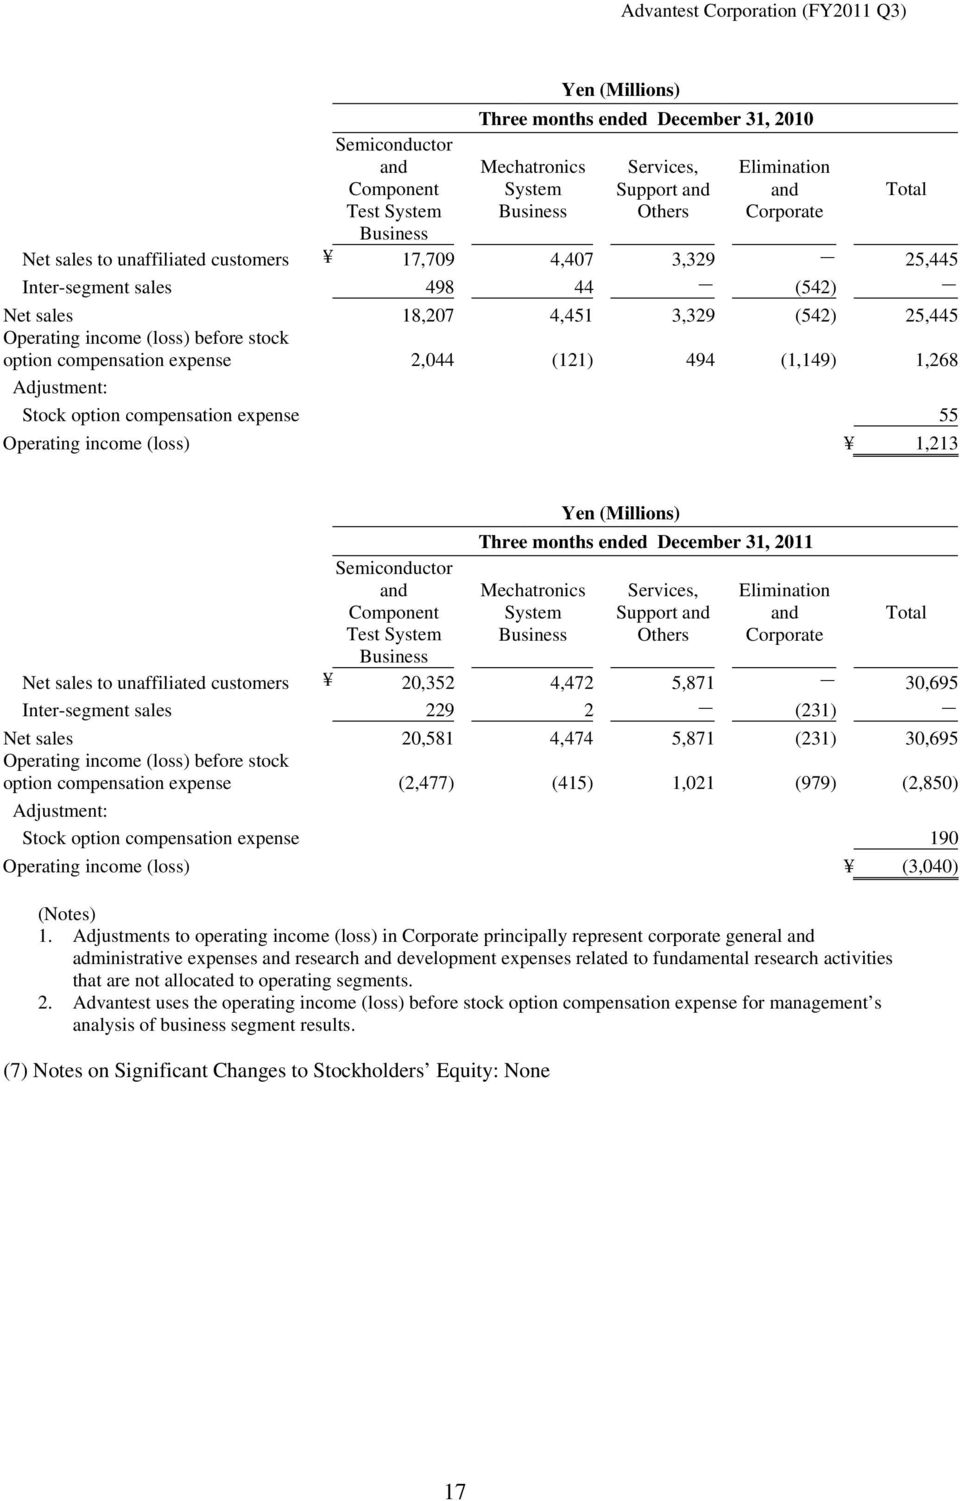 (1,149) 1,268 Adjustment: Stock option compensation expense 55 Operating income (loss) 1,213 Total Semiconductor and Component Test System Business Three months ended December 31, 2011 Mechatronics